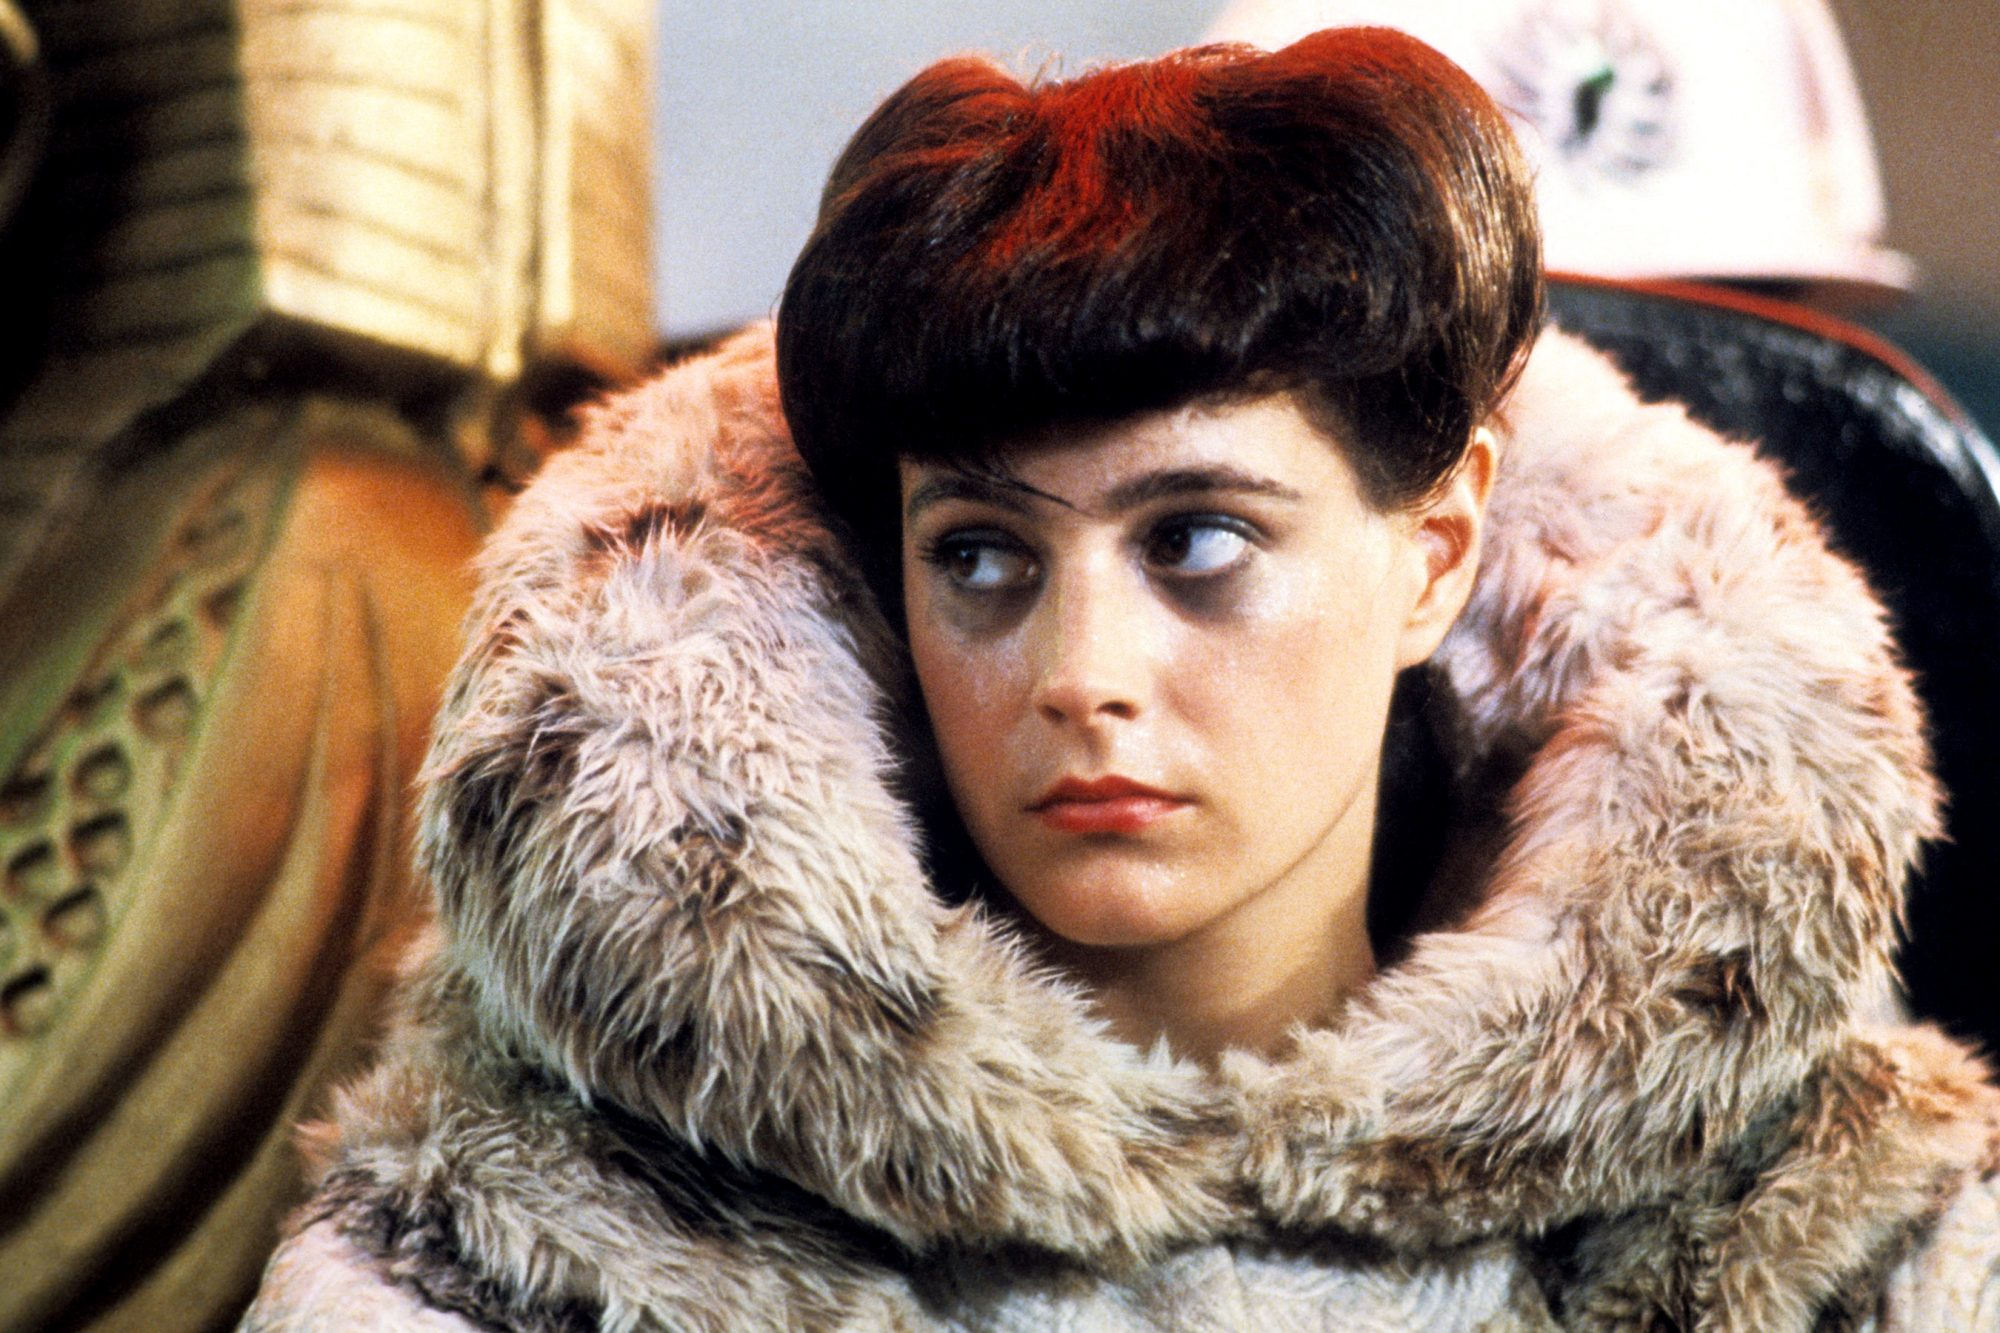 BLADE RUNNER, Sean Young, 1982, (c) Warner Bros./courtesy Everett Collection